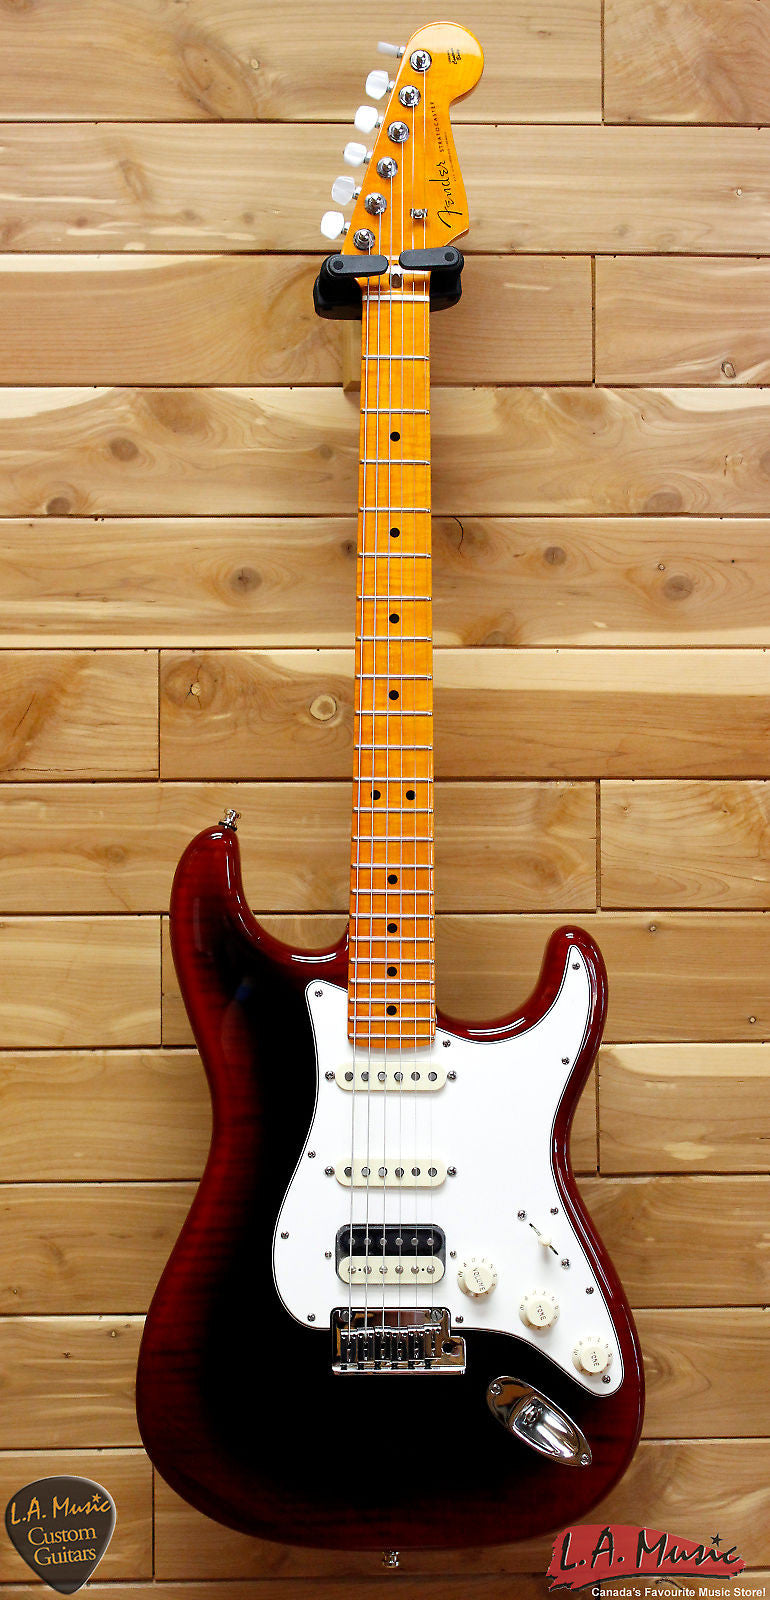 fender custom shop american custom stratocaster hss maple neck red bur l a music canada 39 s. Black Bedroom Furniture Sets. Home Design Ideas